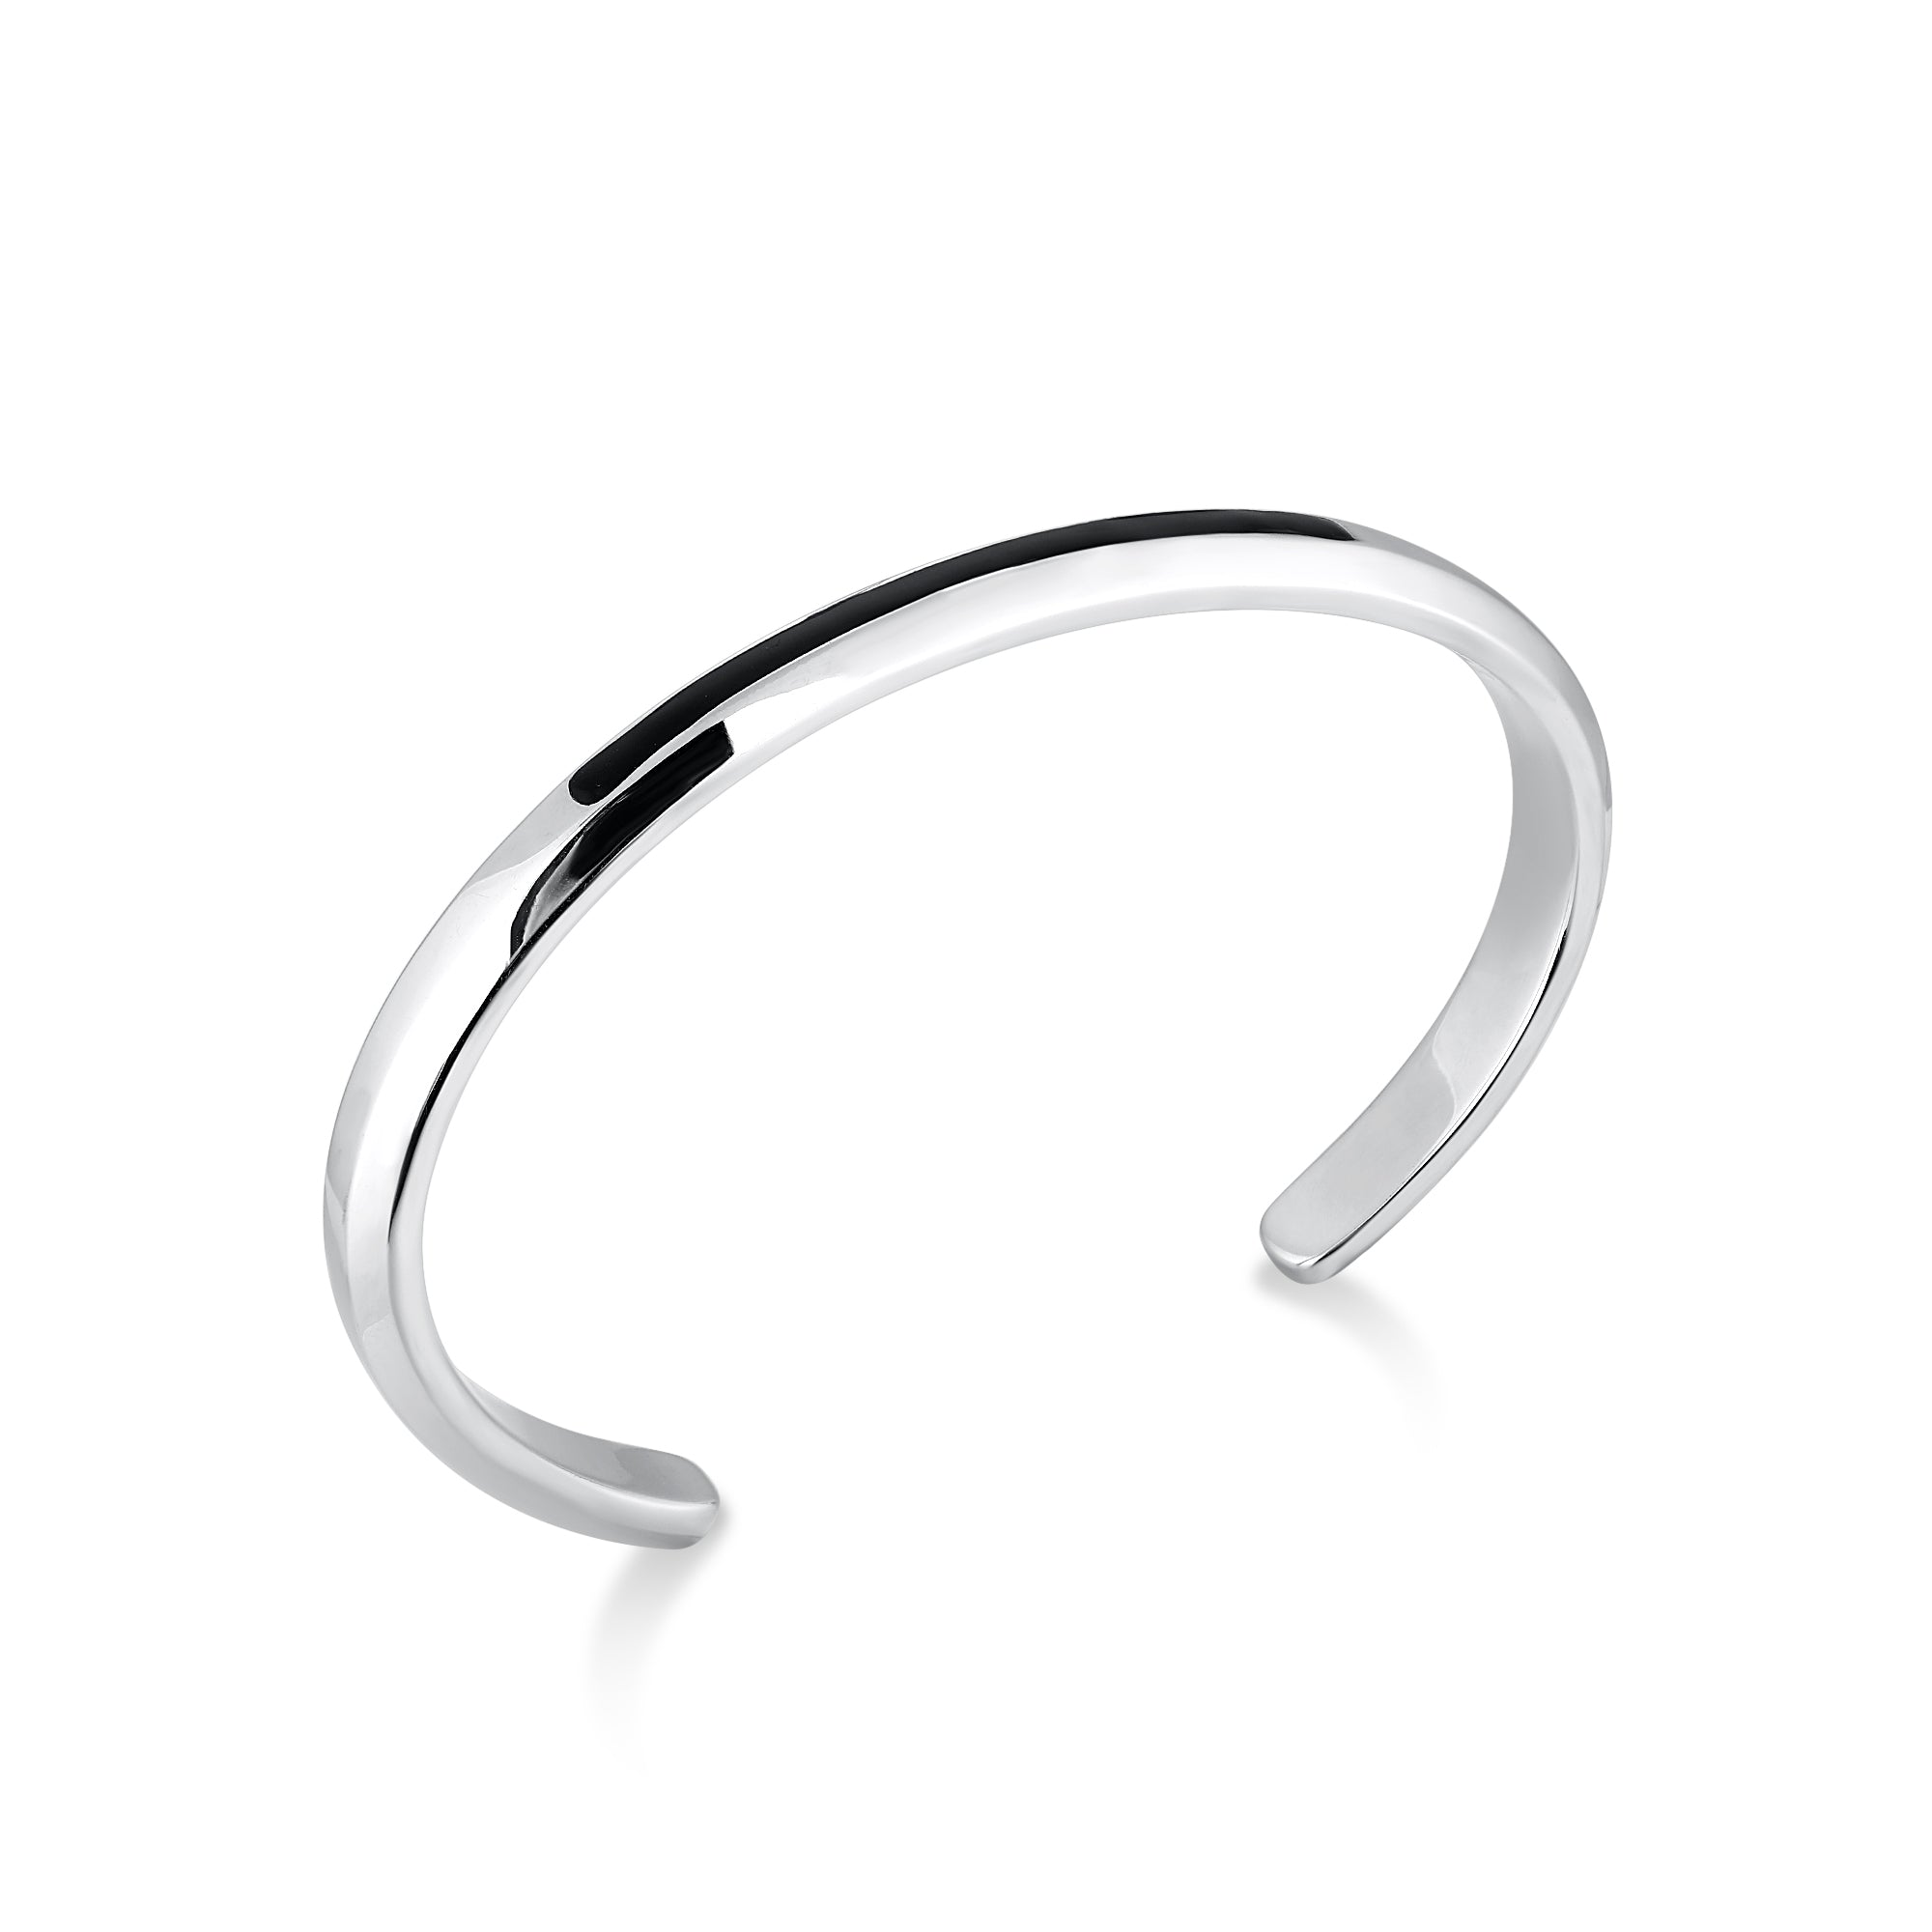 Rhodium Plated Cuff Bracelet with Thin Black Accent Bar